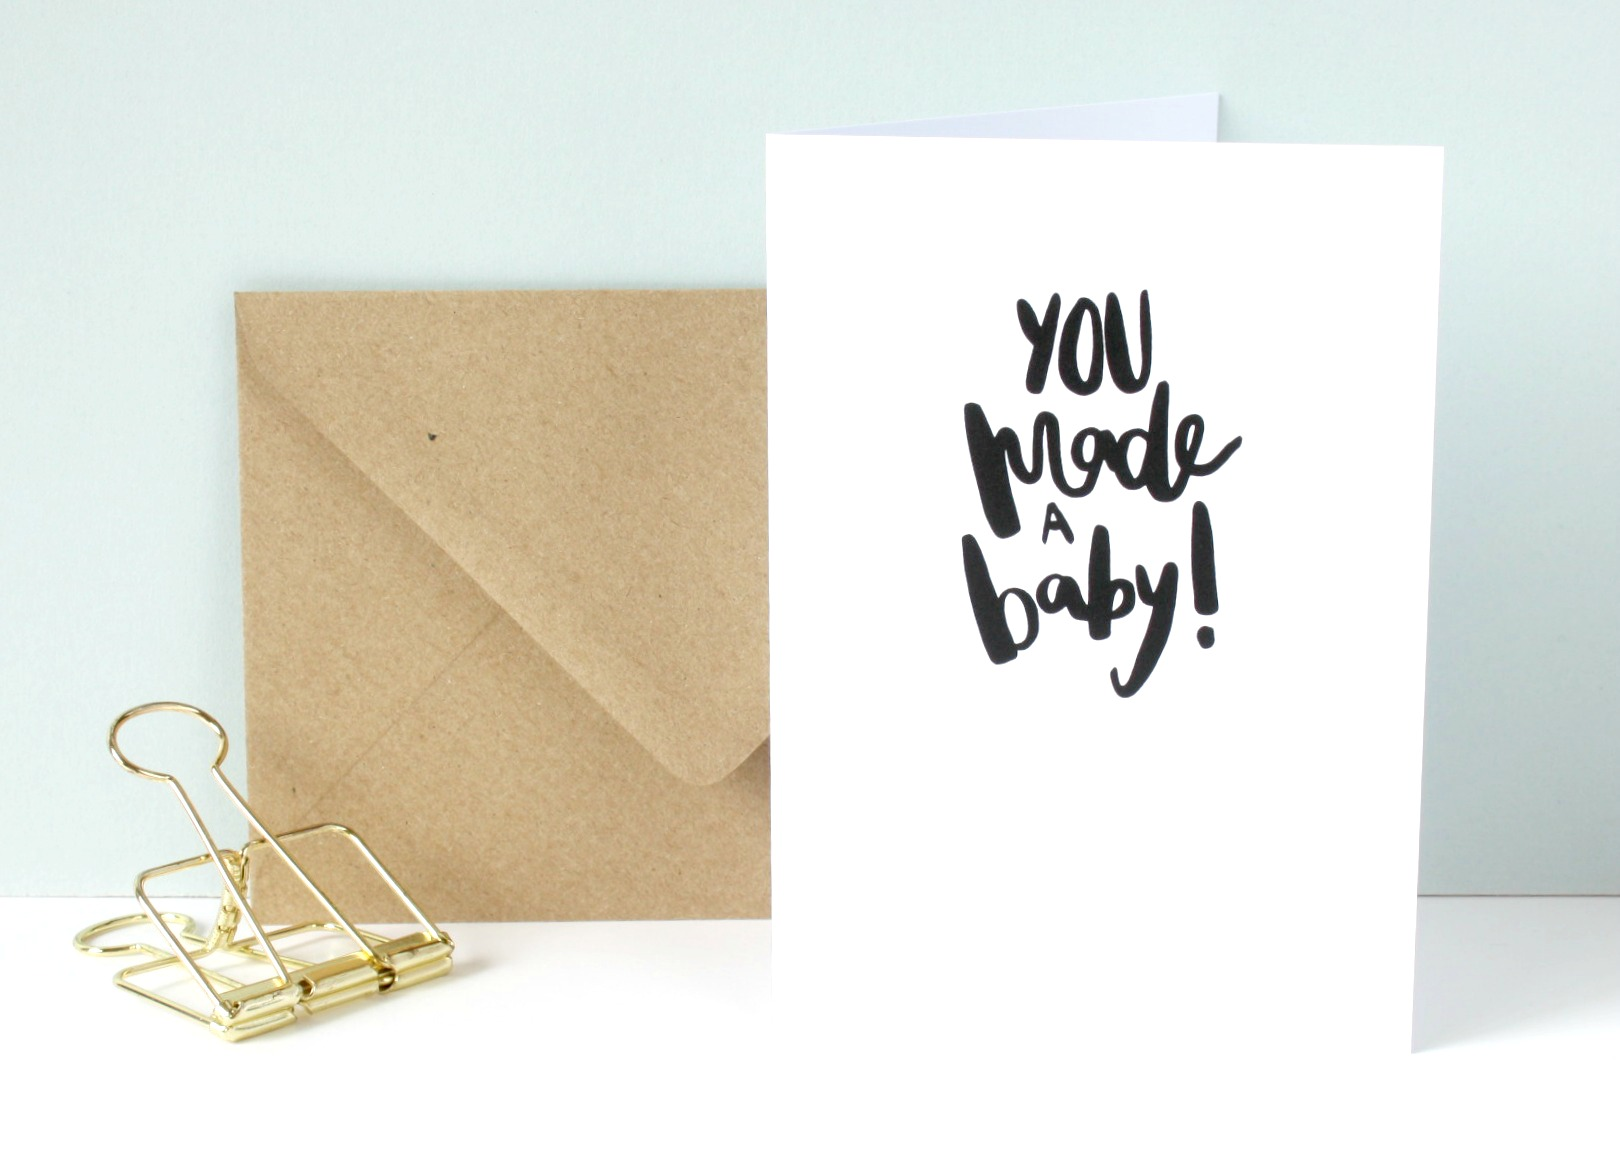 you made a baby greetings card